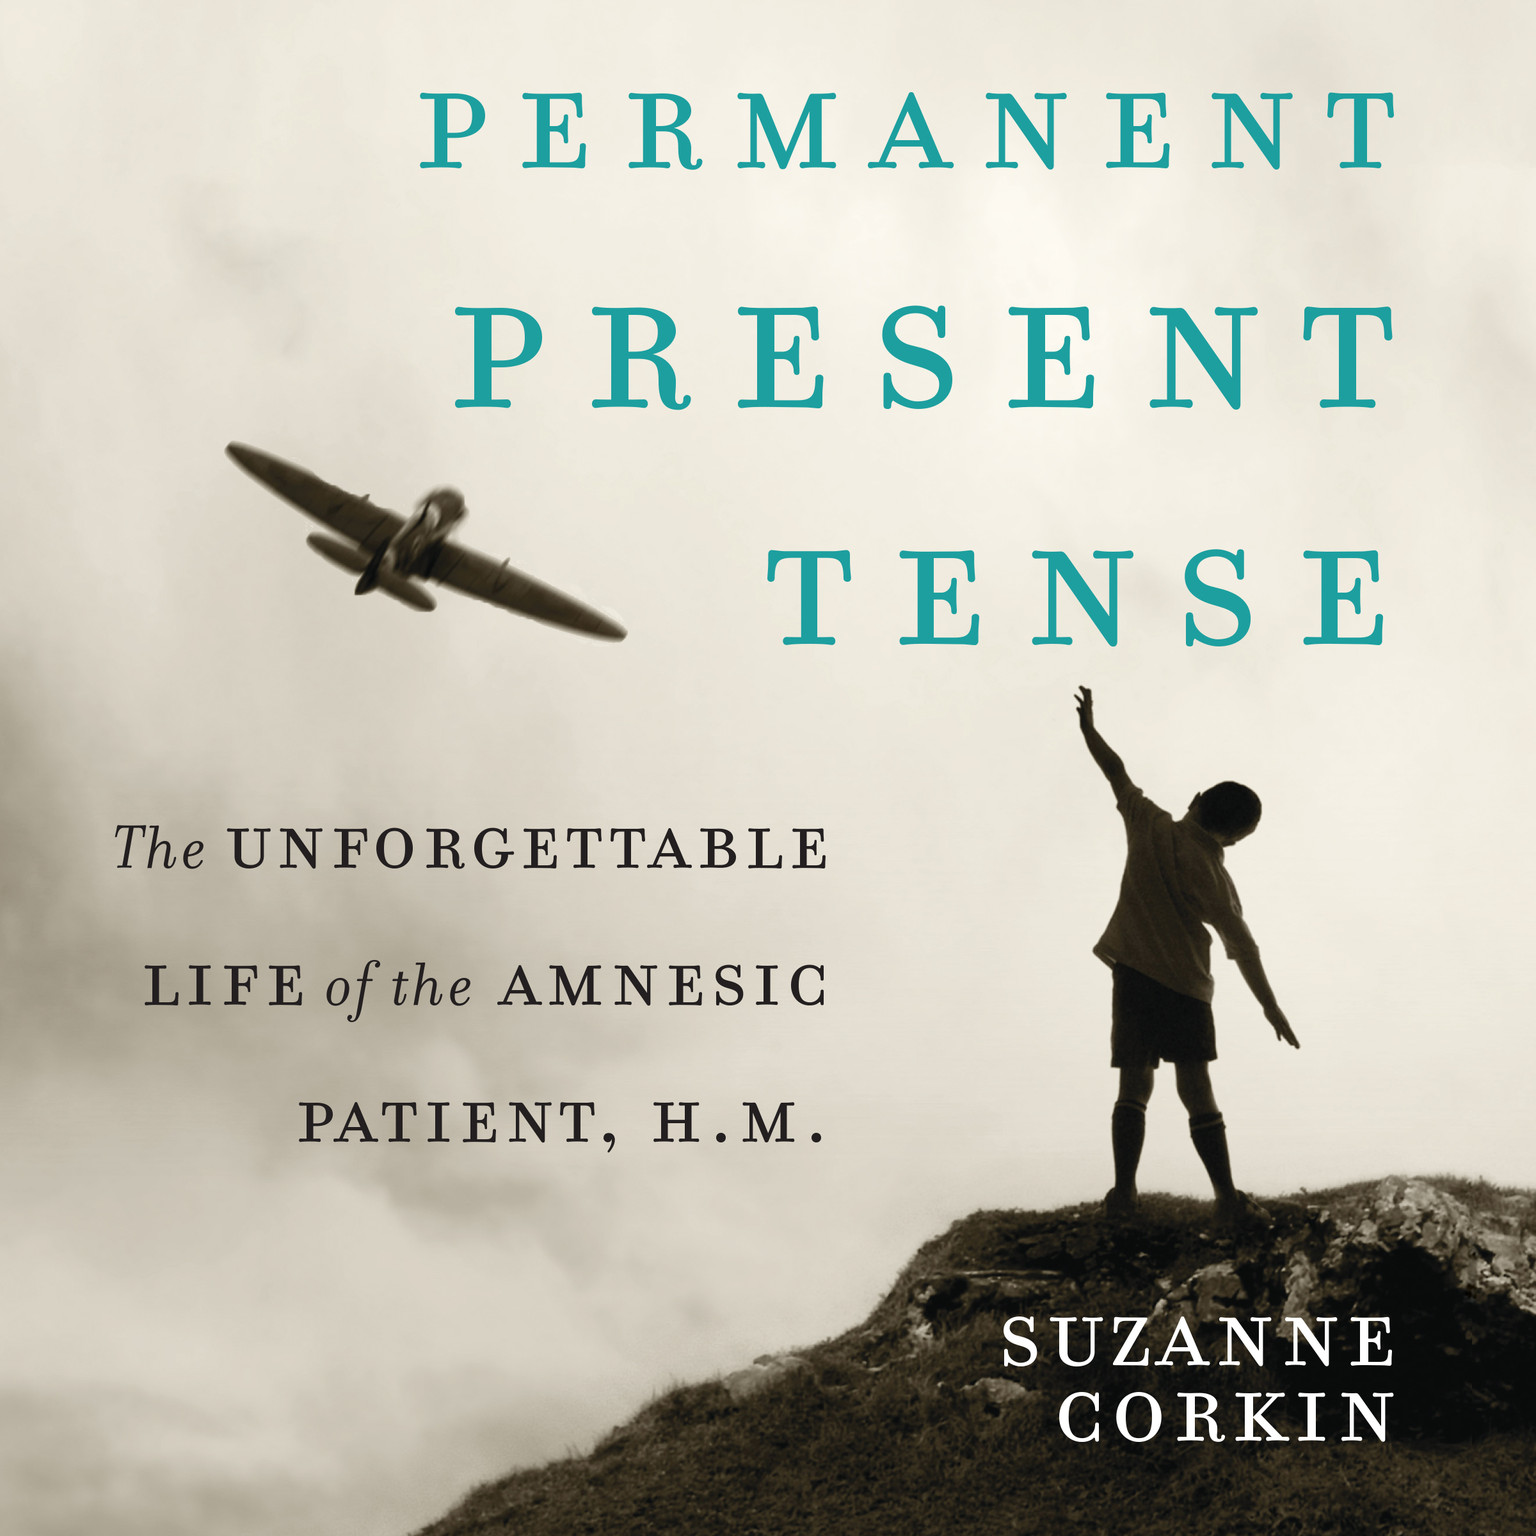 Printable Permanent Present Tense: The Unforgettable Life of the Amnesiac Patient, H.M. Audiobook Cover Art